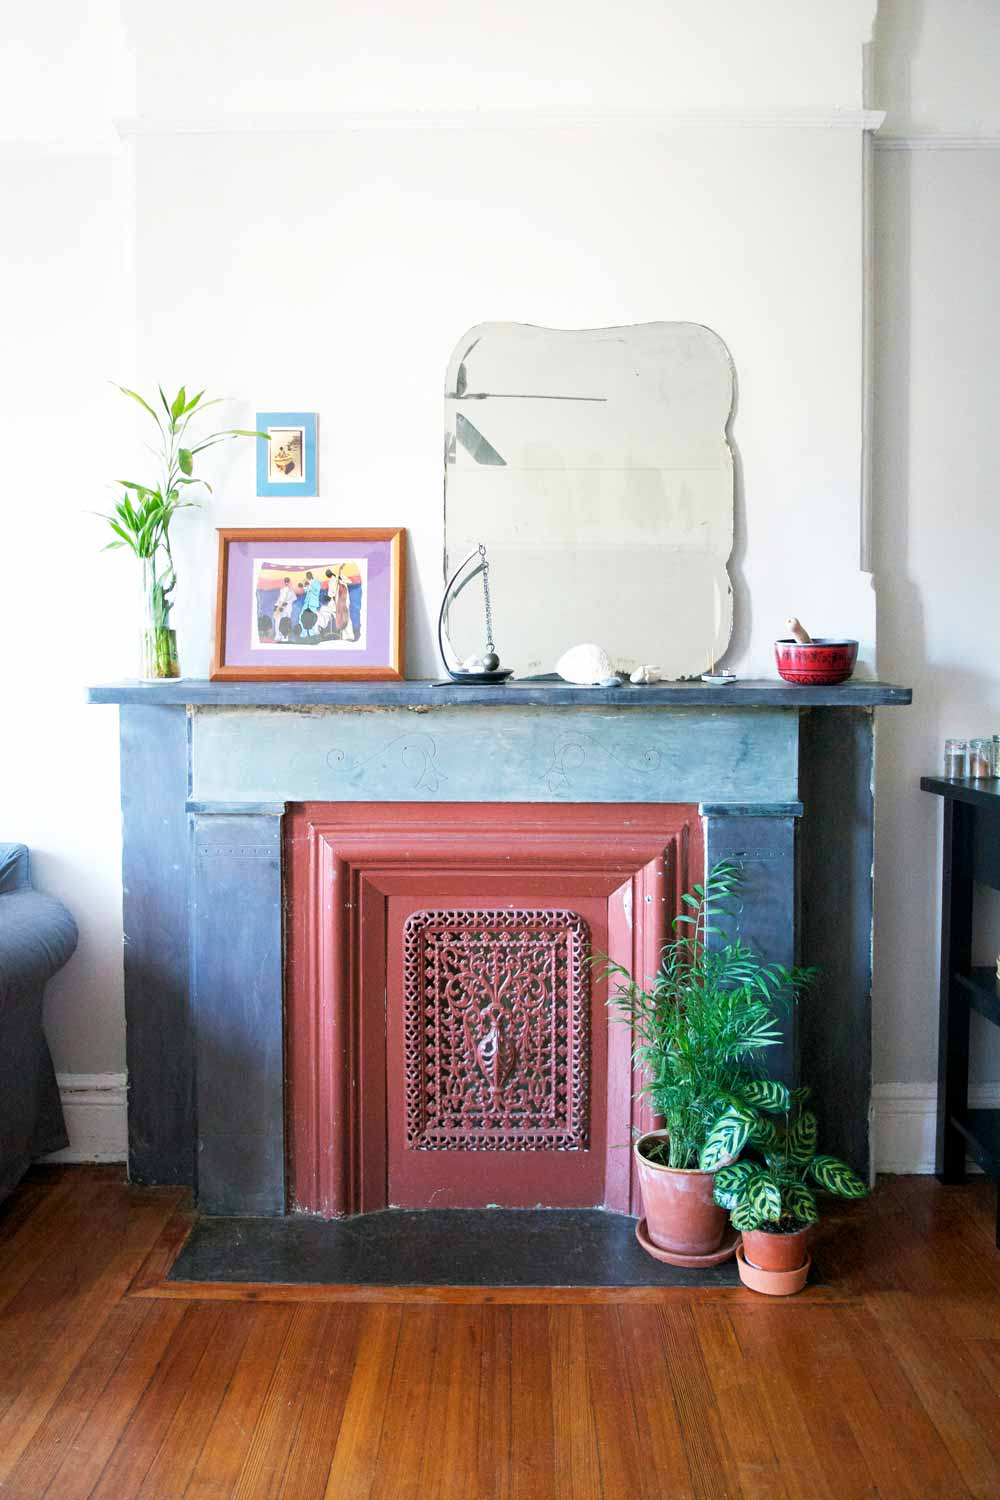 A Bed-Stuy Brownstone Handmade With Love, on Design*Sponge